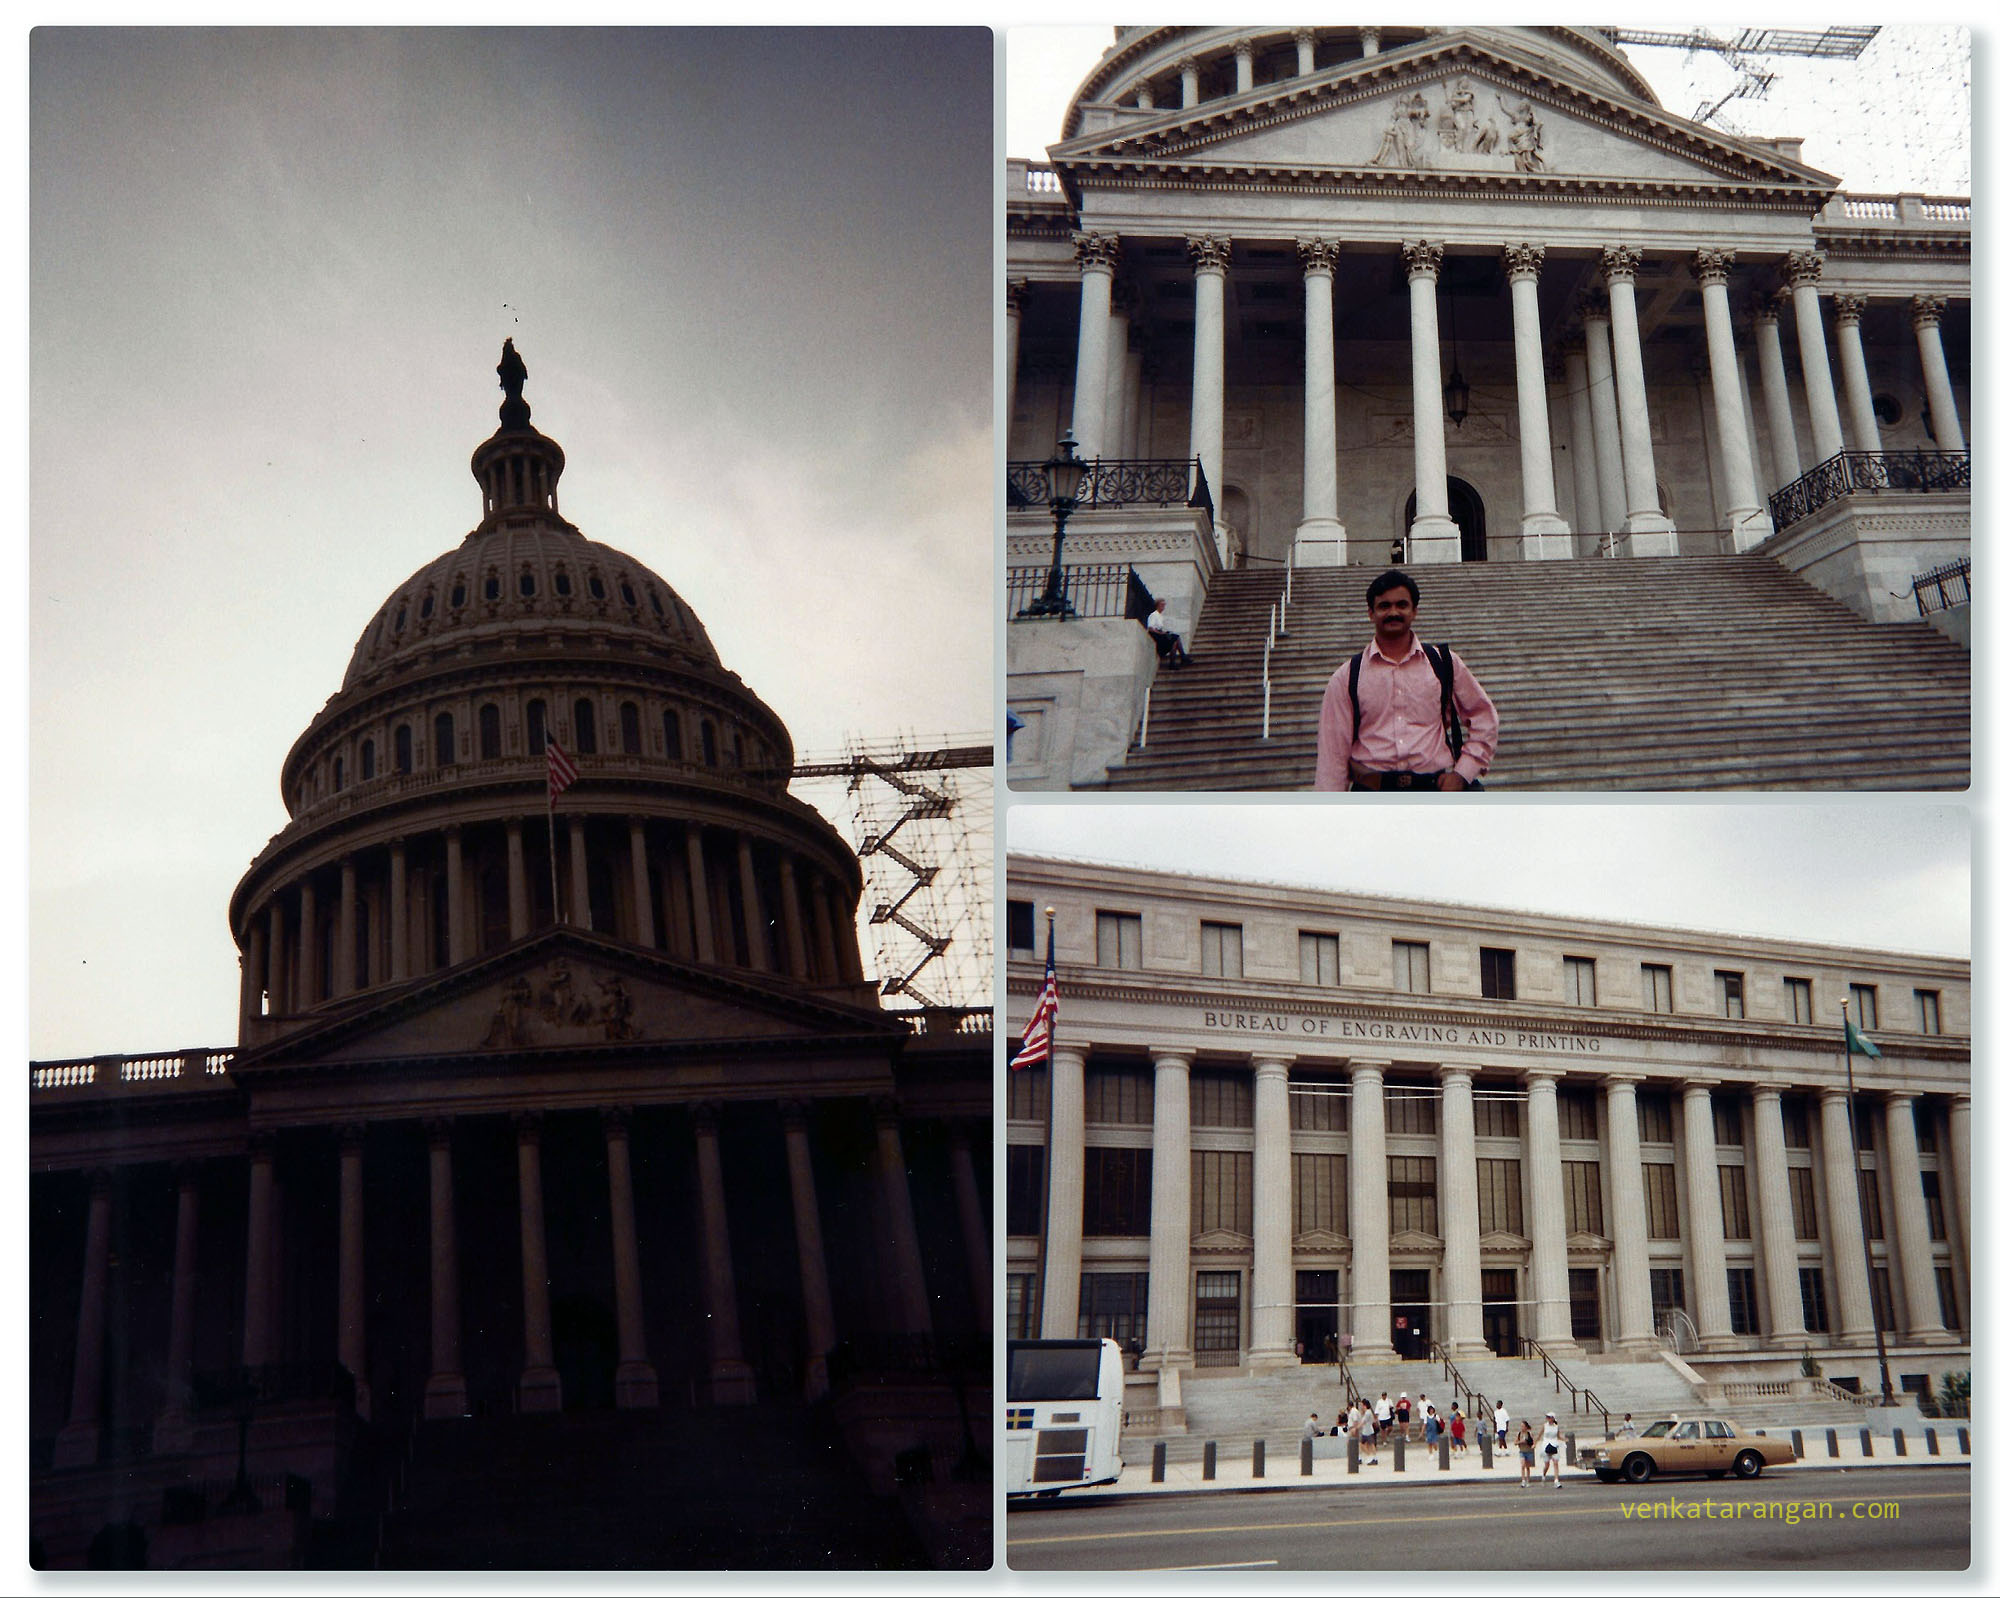 Capitol Hill, Bureau of Engraving and Printing, Washington D.C. in 1999